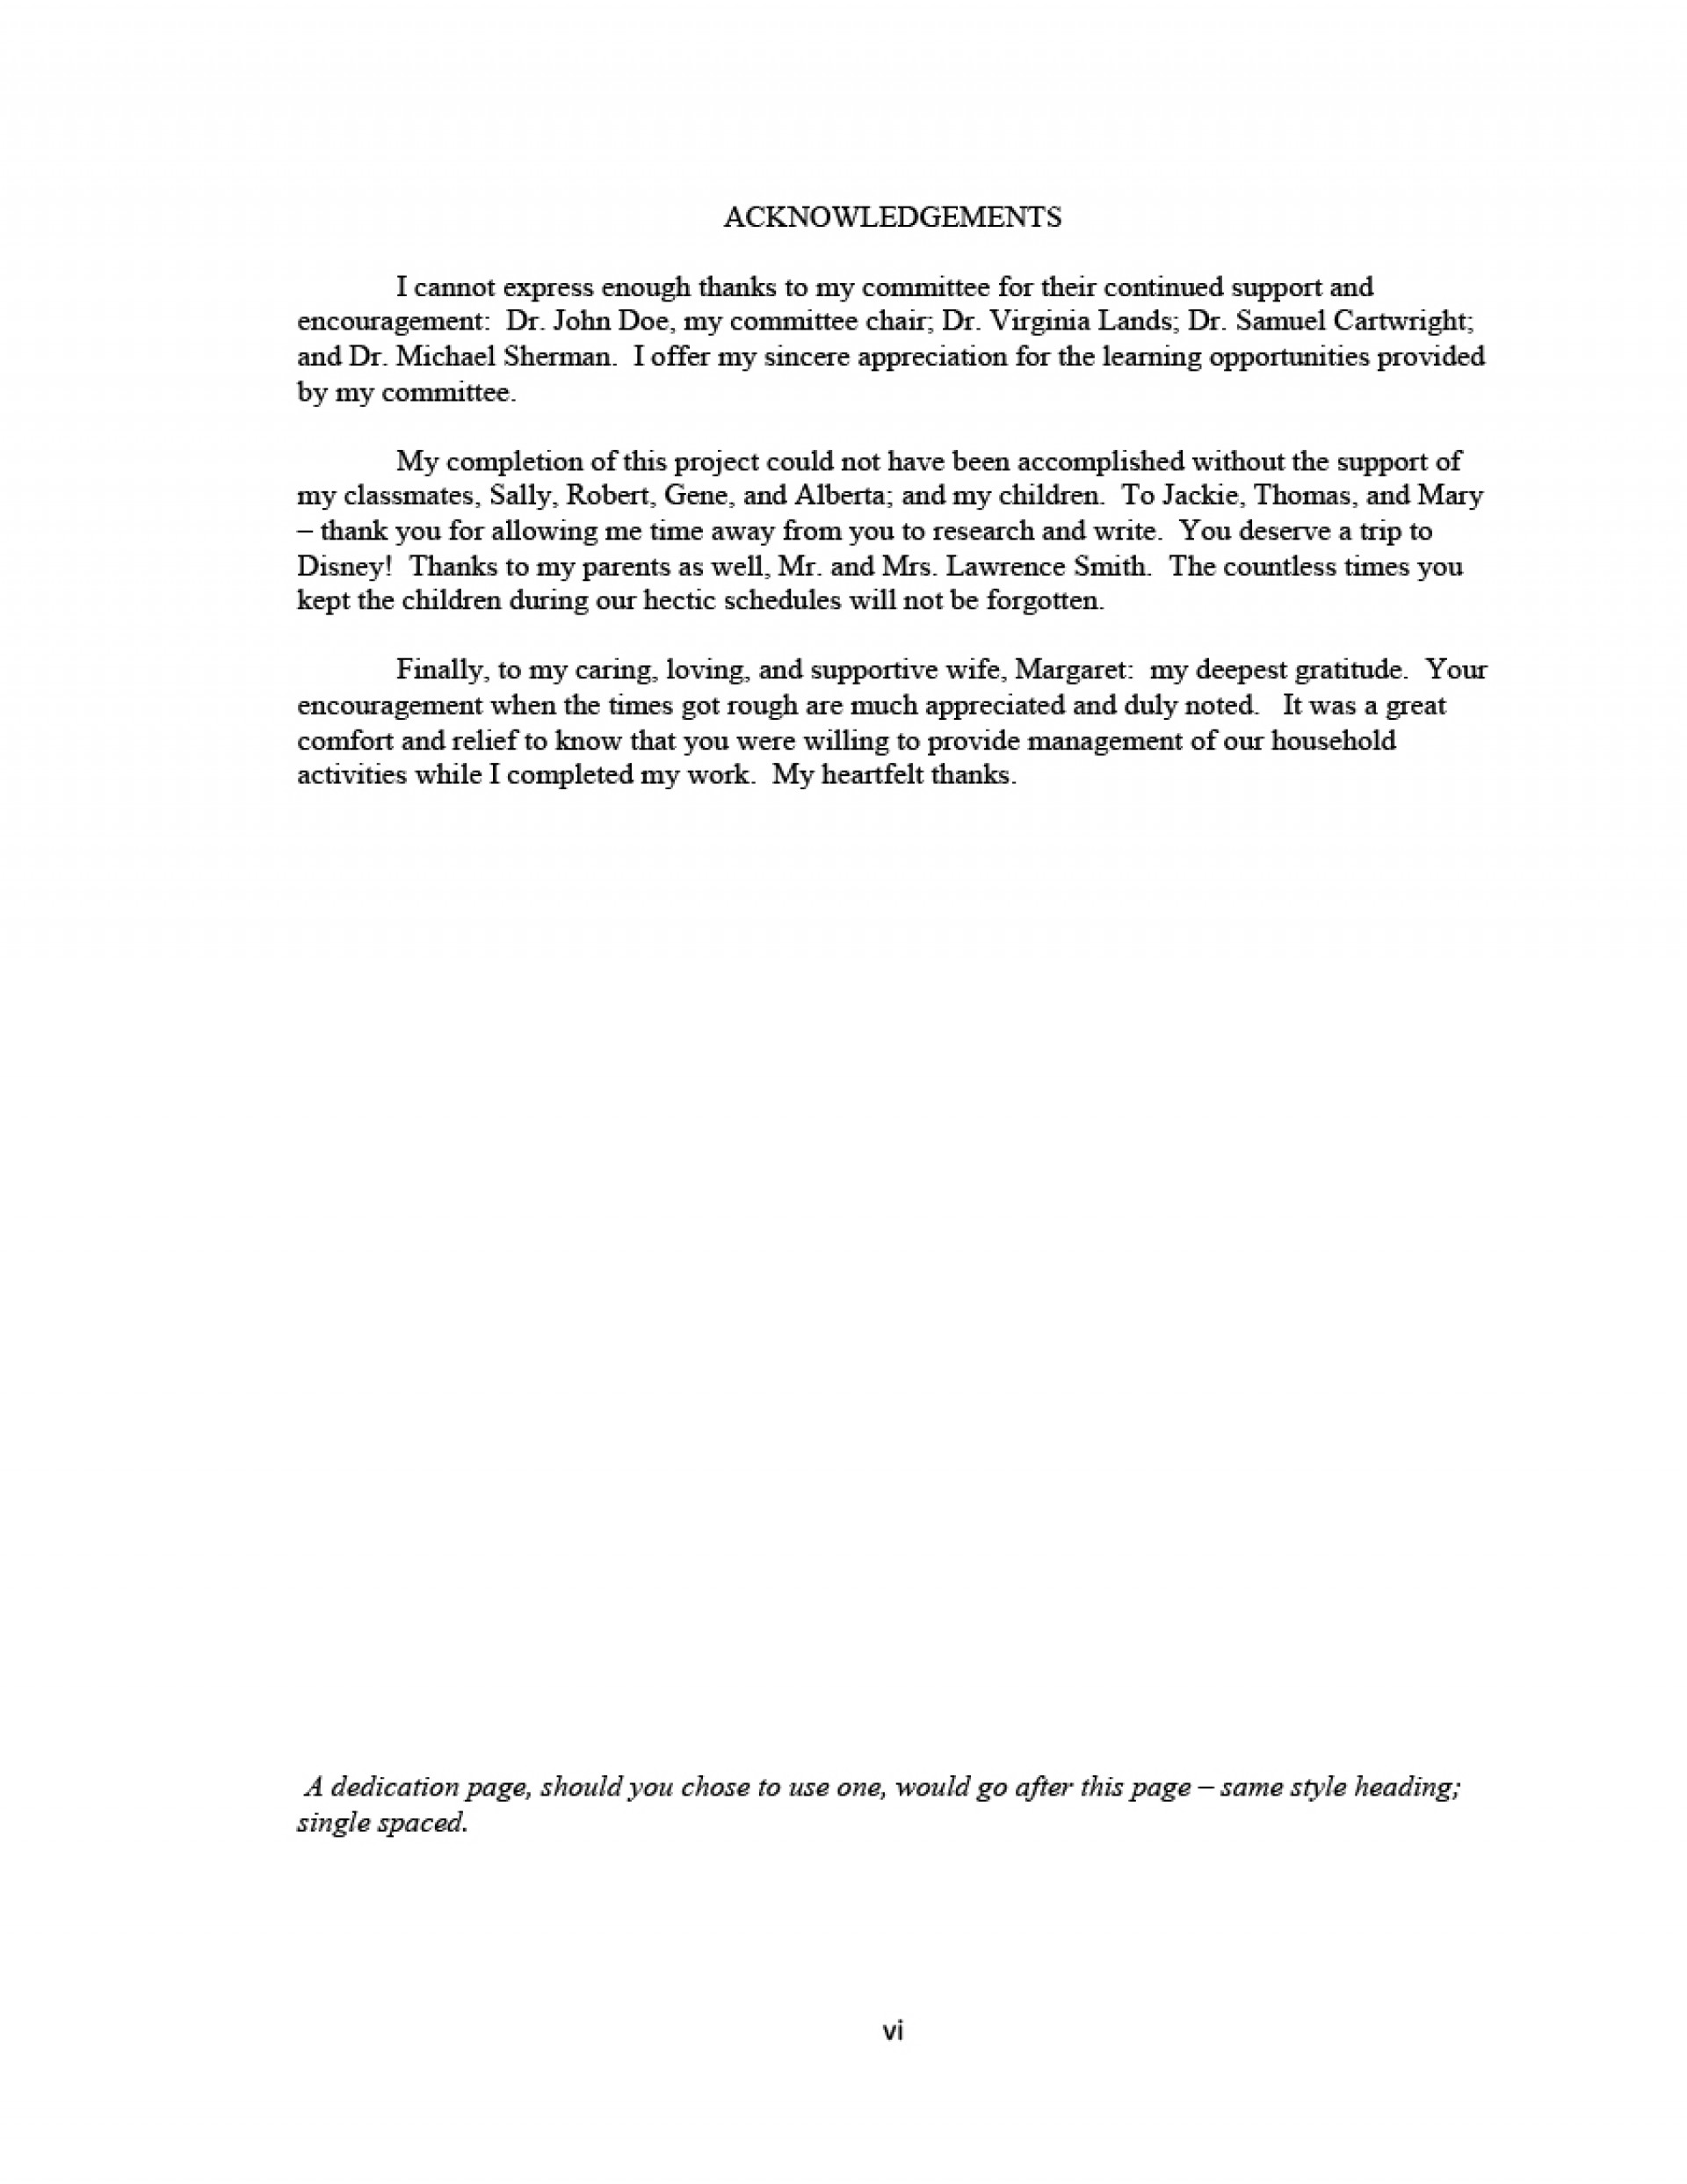 004 Acknowledgement Example For Research Paper Sample Rare Pdf 1920